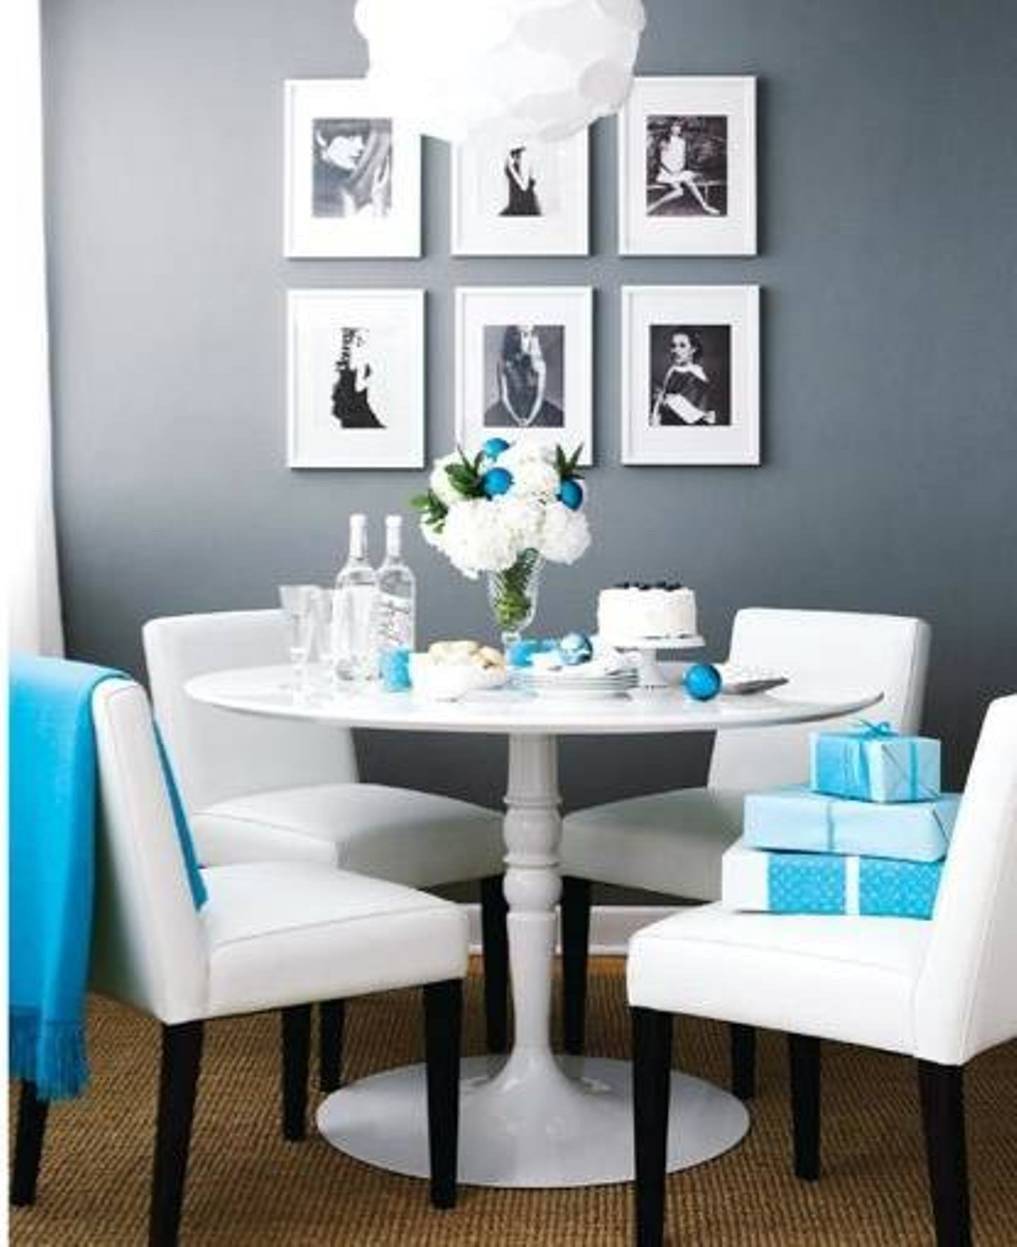 Small Dining Room Decor Ideas Awesome Best Dining Room Decorating Ideas 2017 Also Decorate A Small Helena source